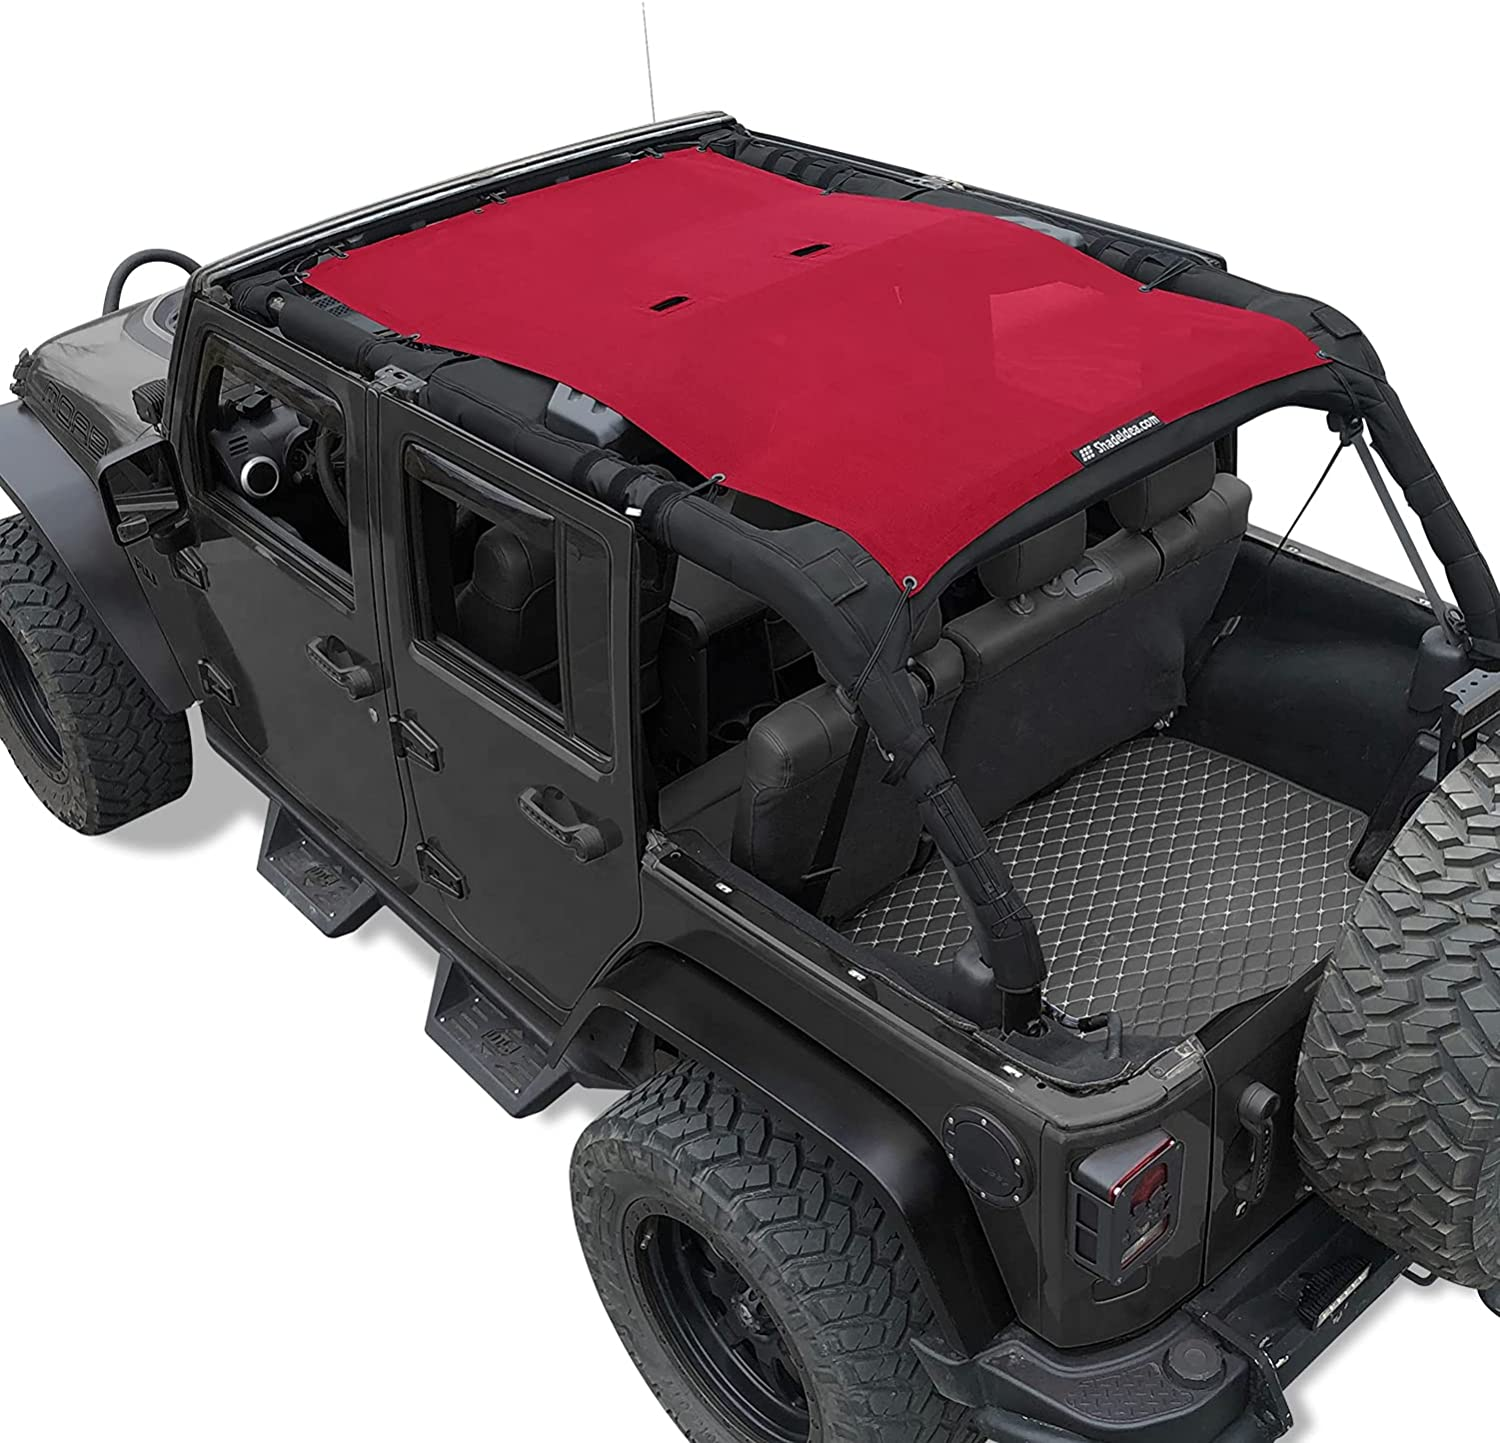 Shadeidea Sun Shade Cheap mail order specialty store for Jeep 2007-2018 Wrangler 4 JK Unlimited Max 60% OFF